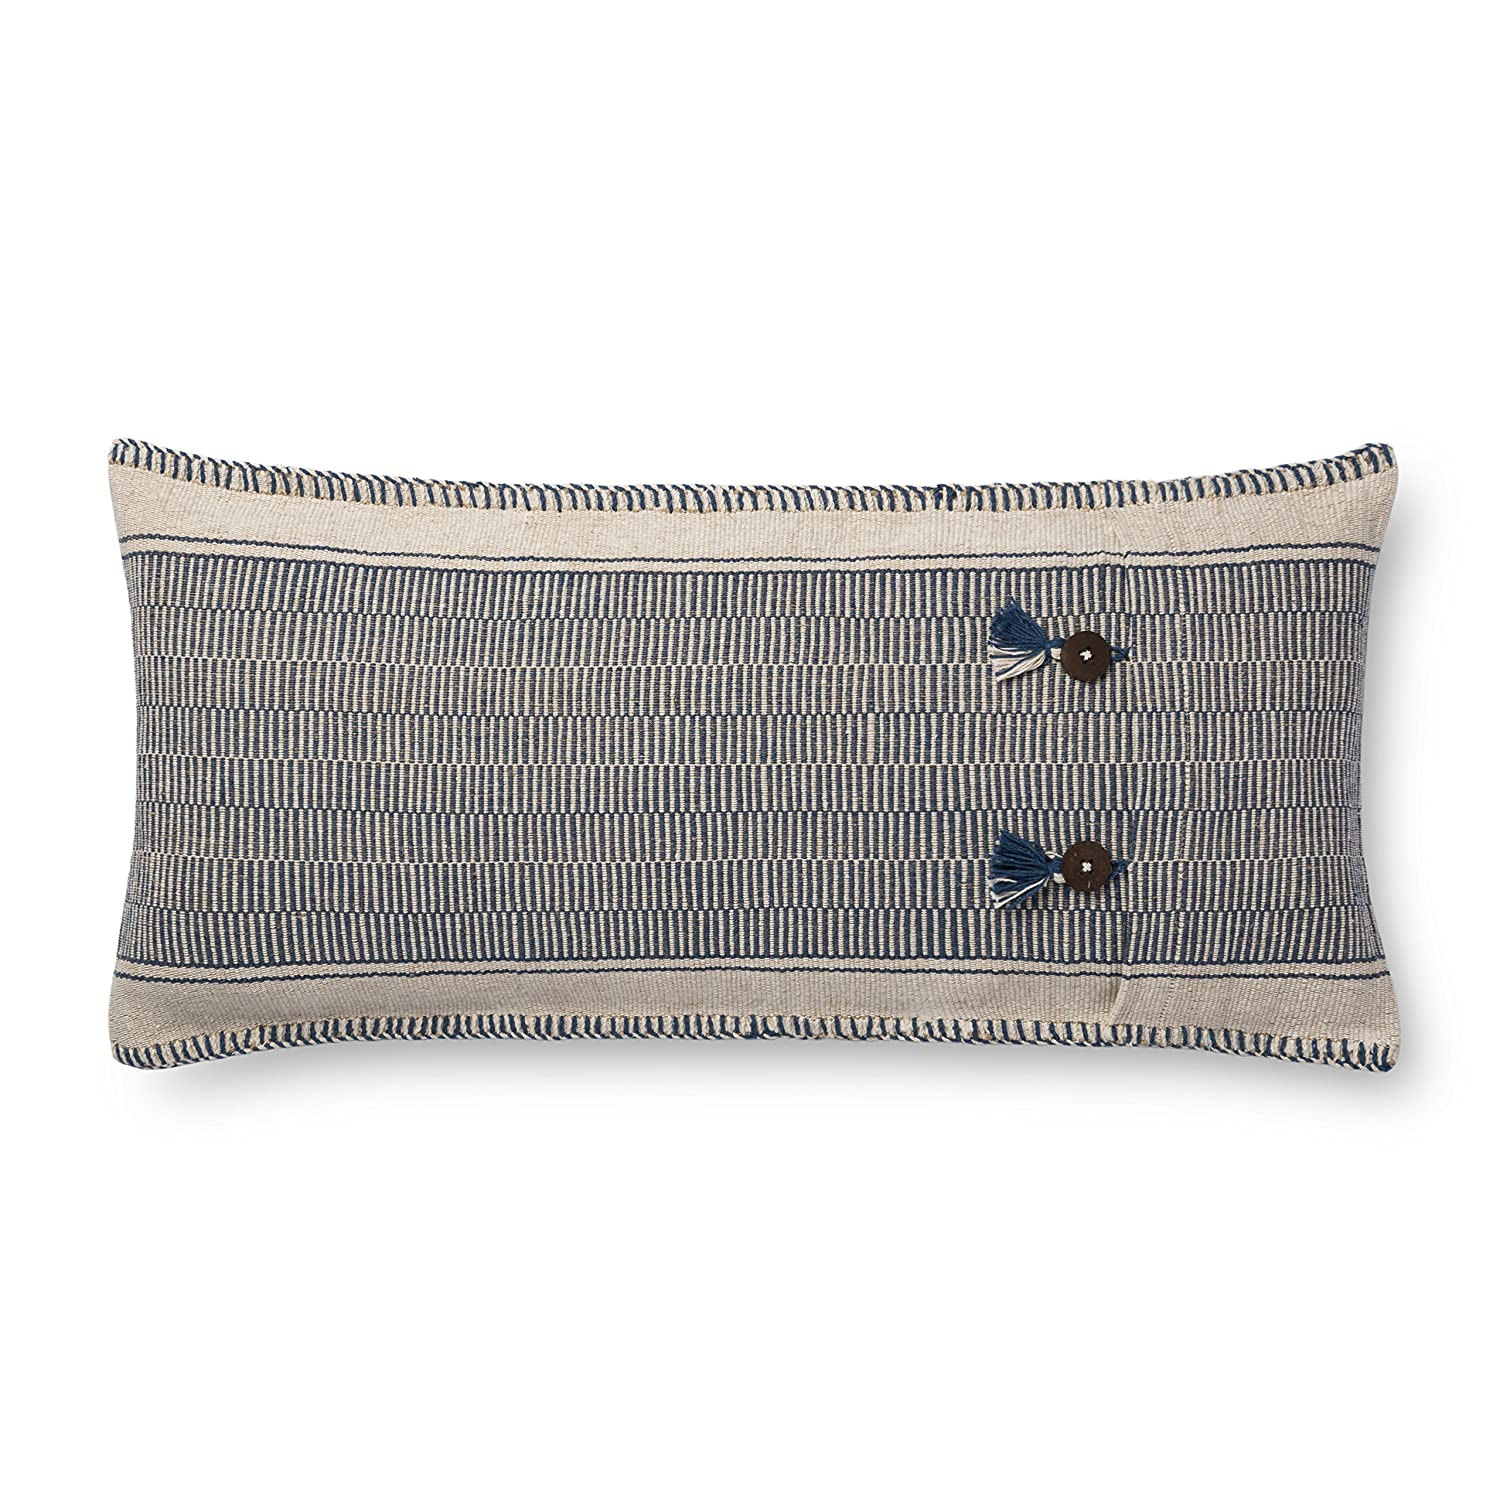 Loloi Cover with Down Filled Feathers and Buttons Closure Throw Pillow 12 X 27 Indigo//Natural Loloi Rugs Inc P0712